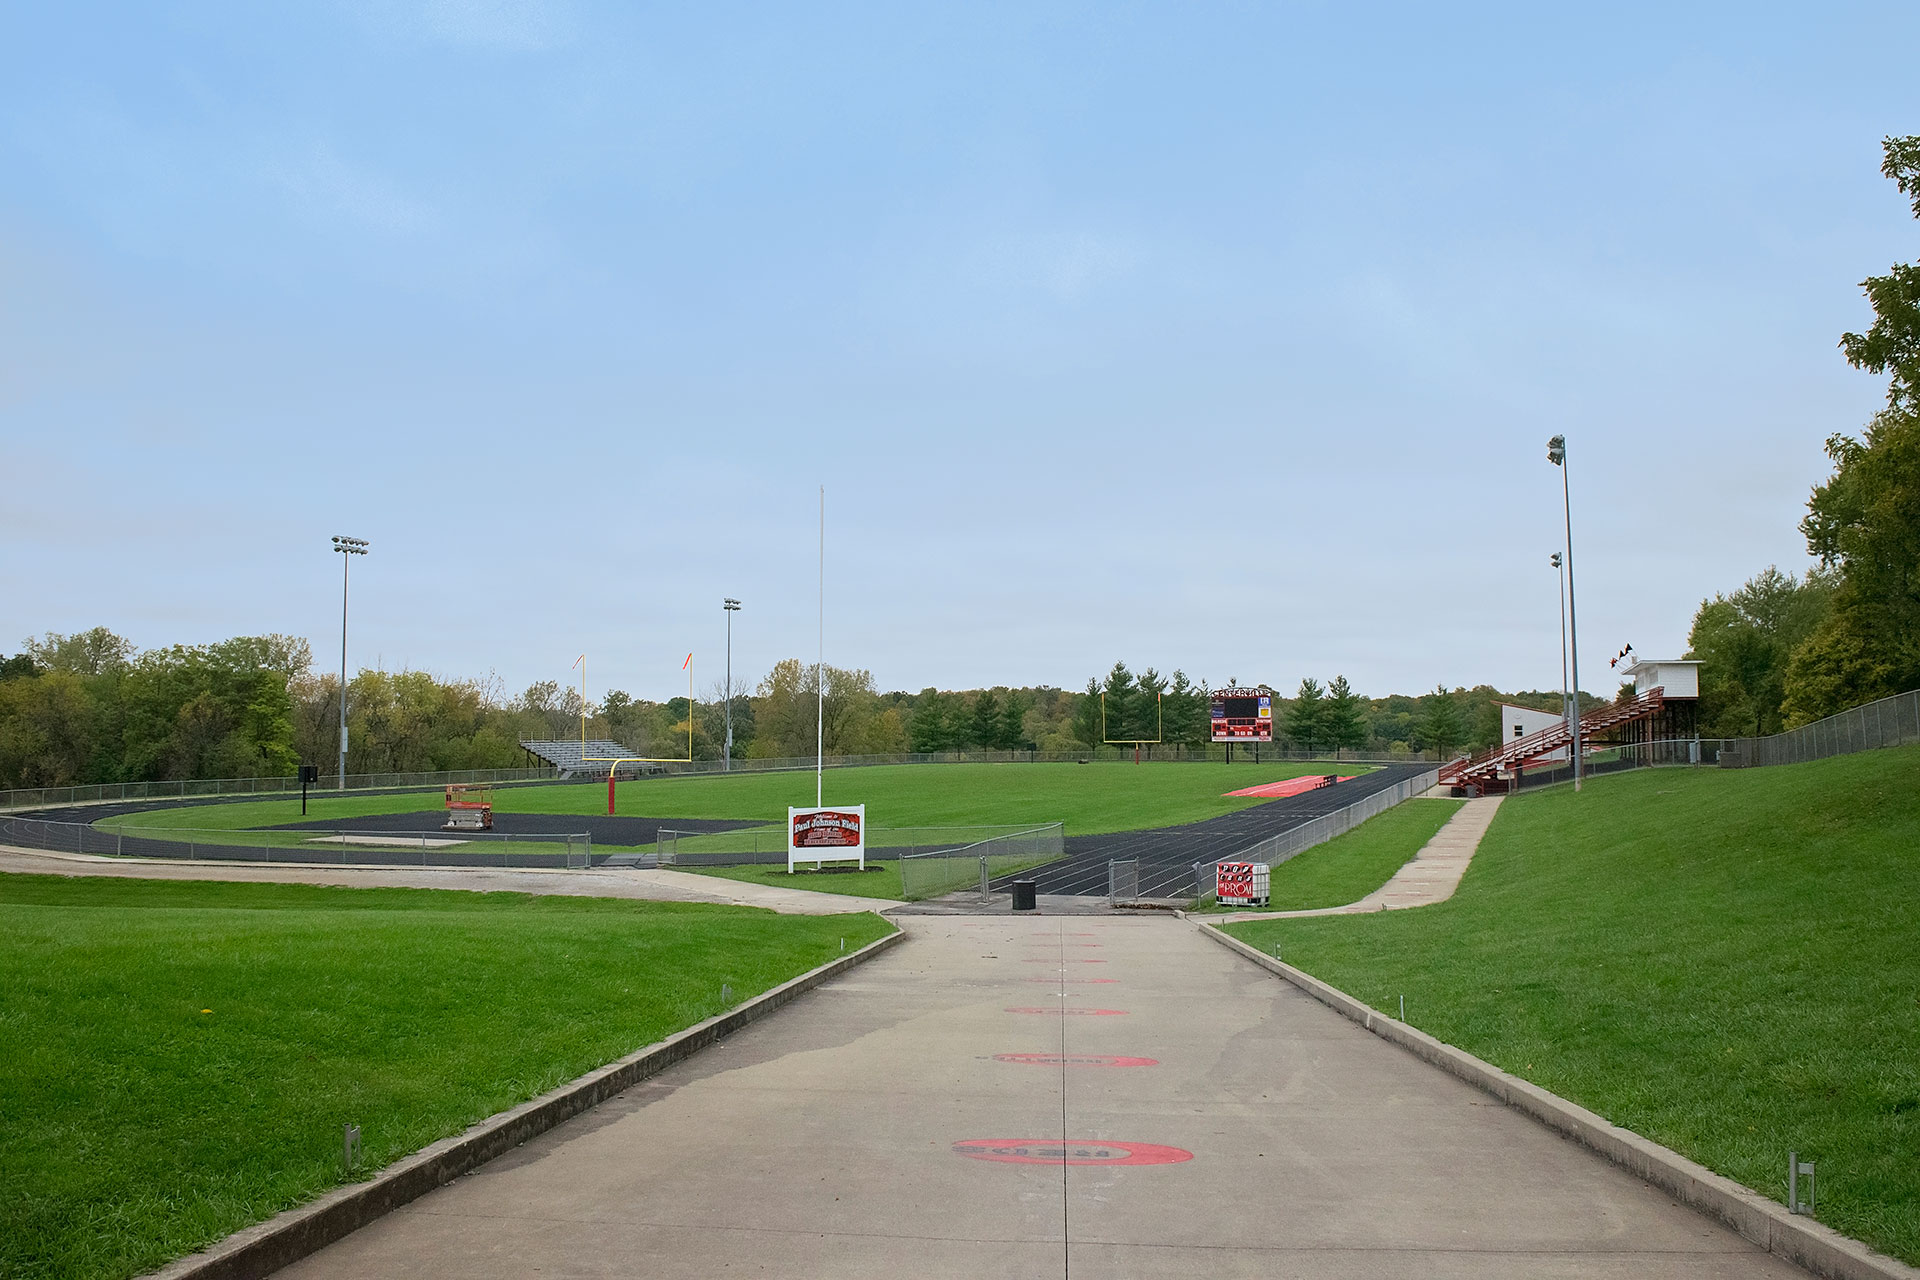 View of the Football field